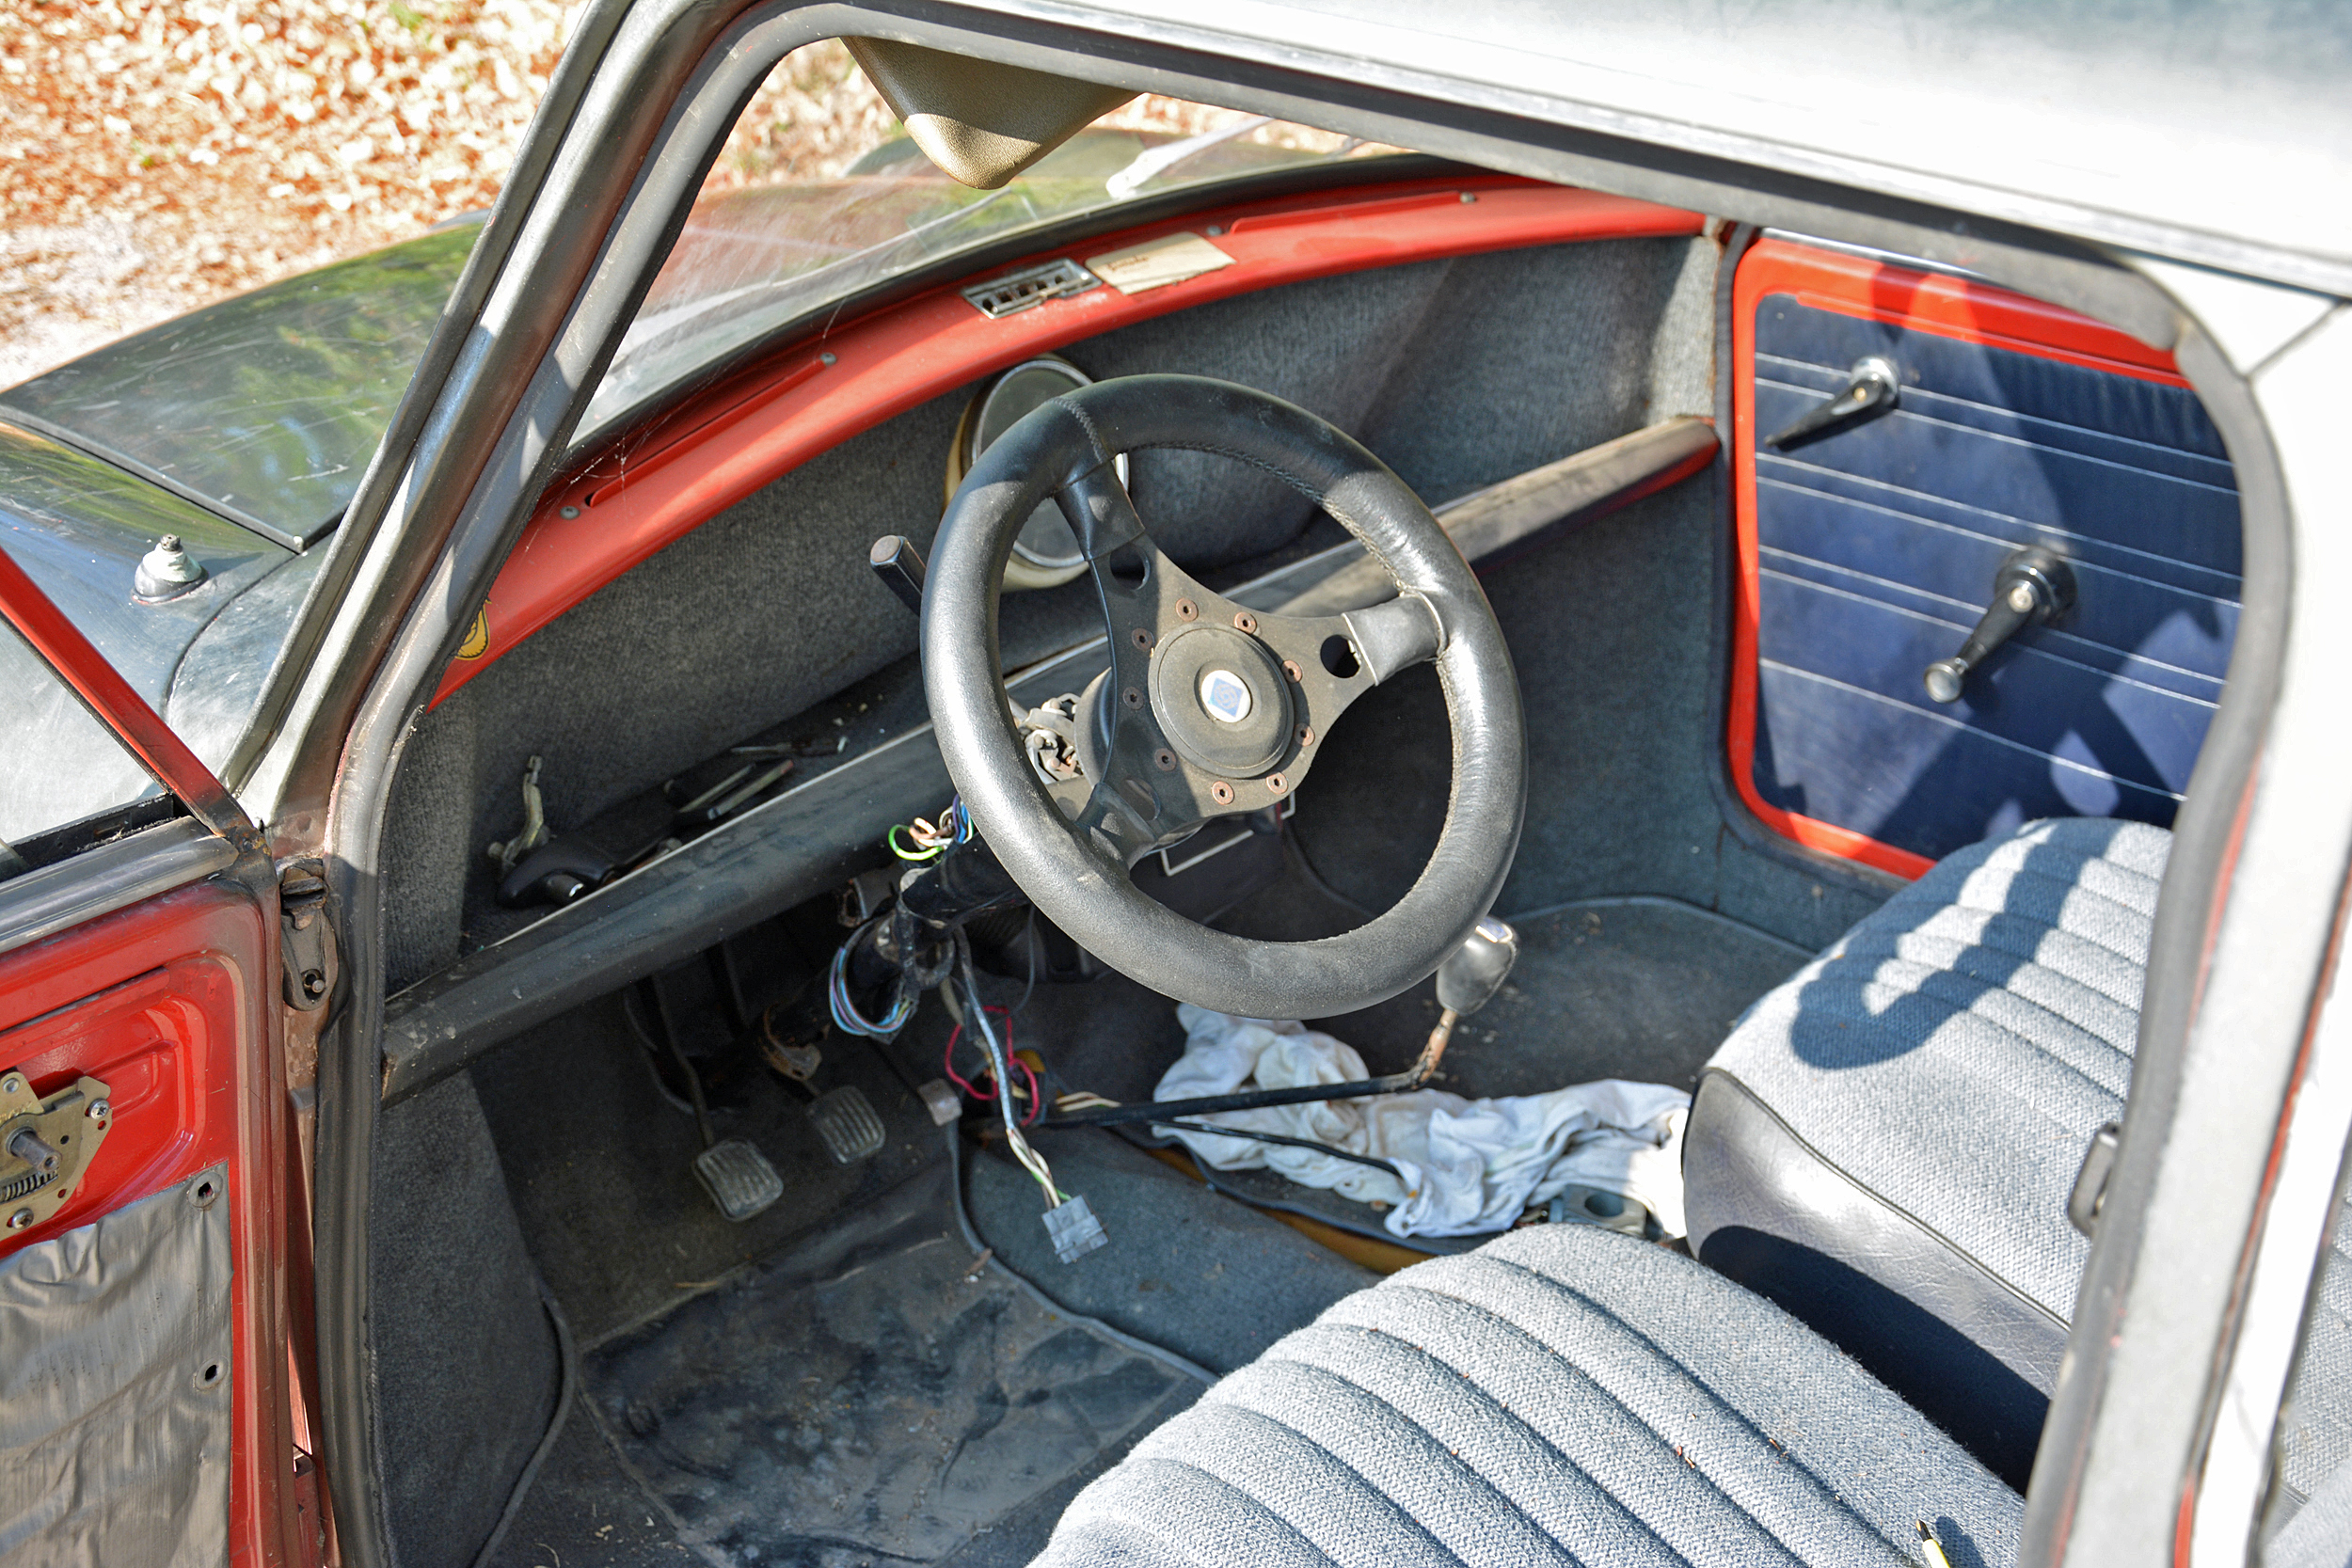 1972 Mini Steering Wheel